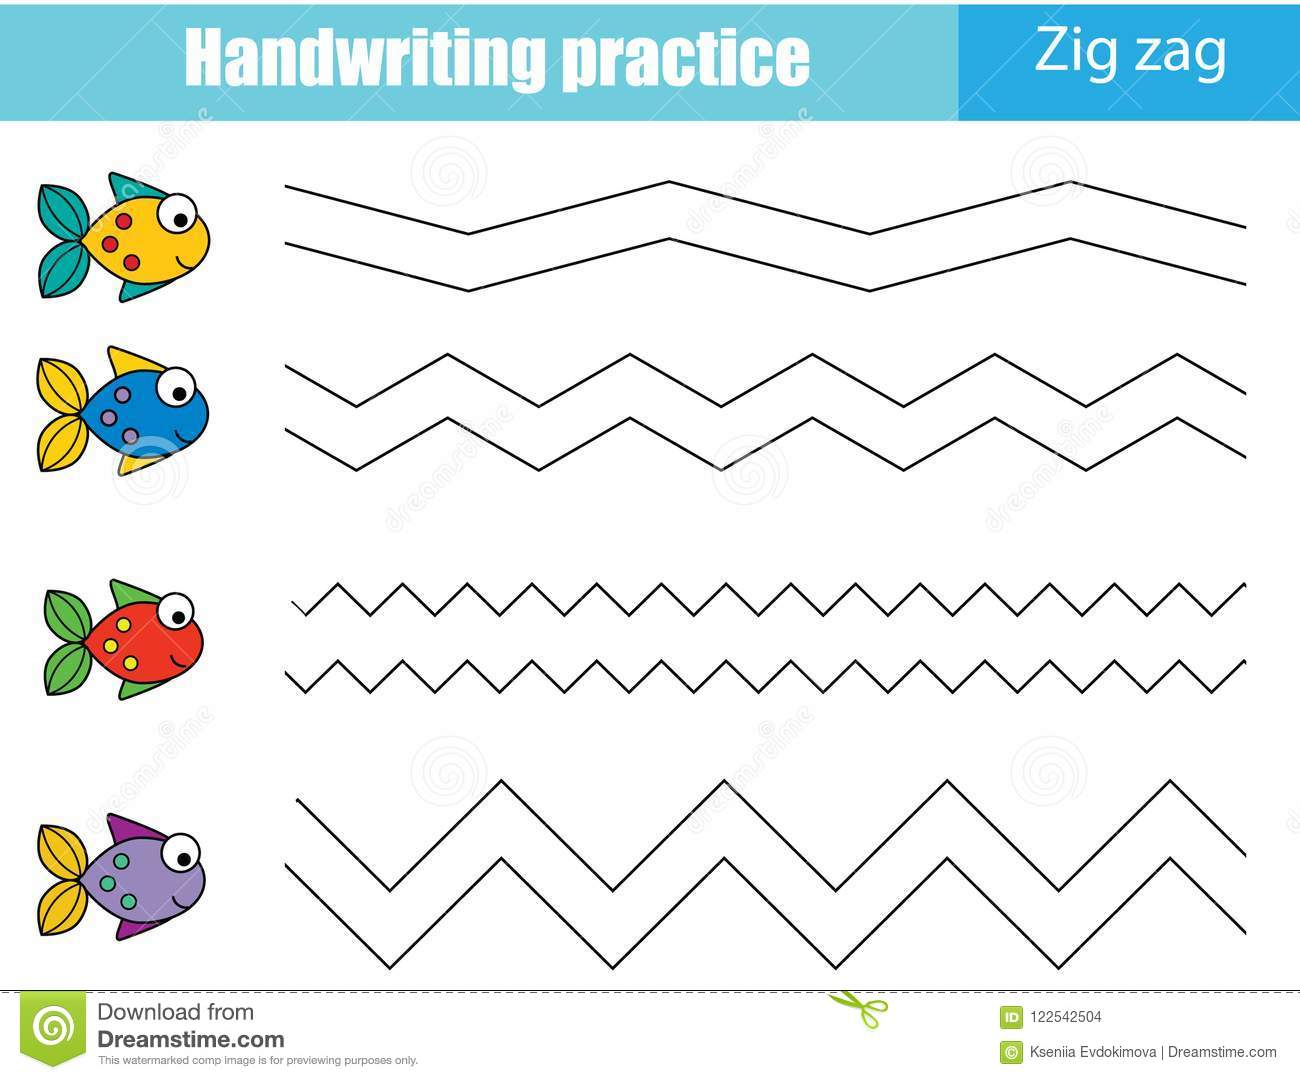 Handwriting Practice Sheet Educational Children Game Printable Worksheet For Kids Zig Zag